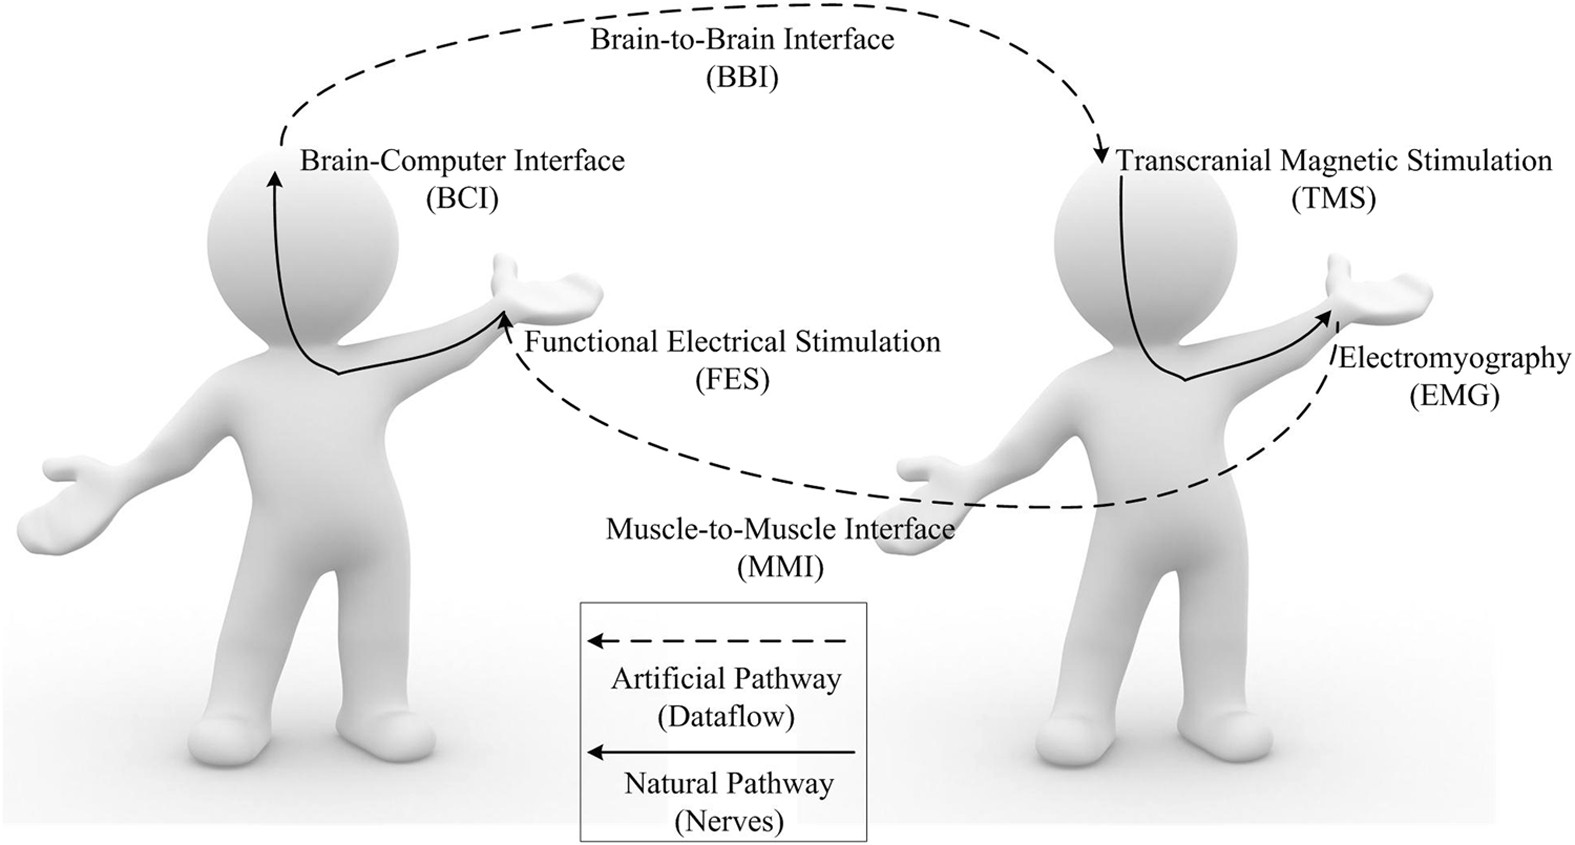 Human To Closed Loop Control Based On Brain Interface Figure 2 Block Diagram Of The Proposed System For Emg Signal And Muscle Scientific Reports